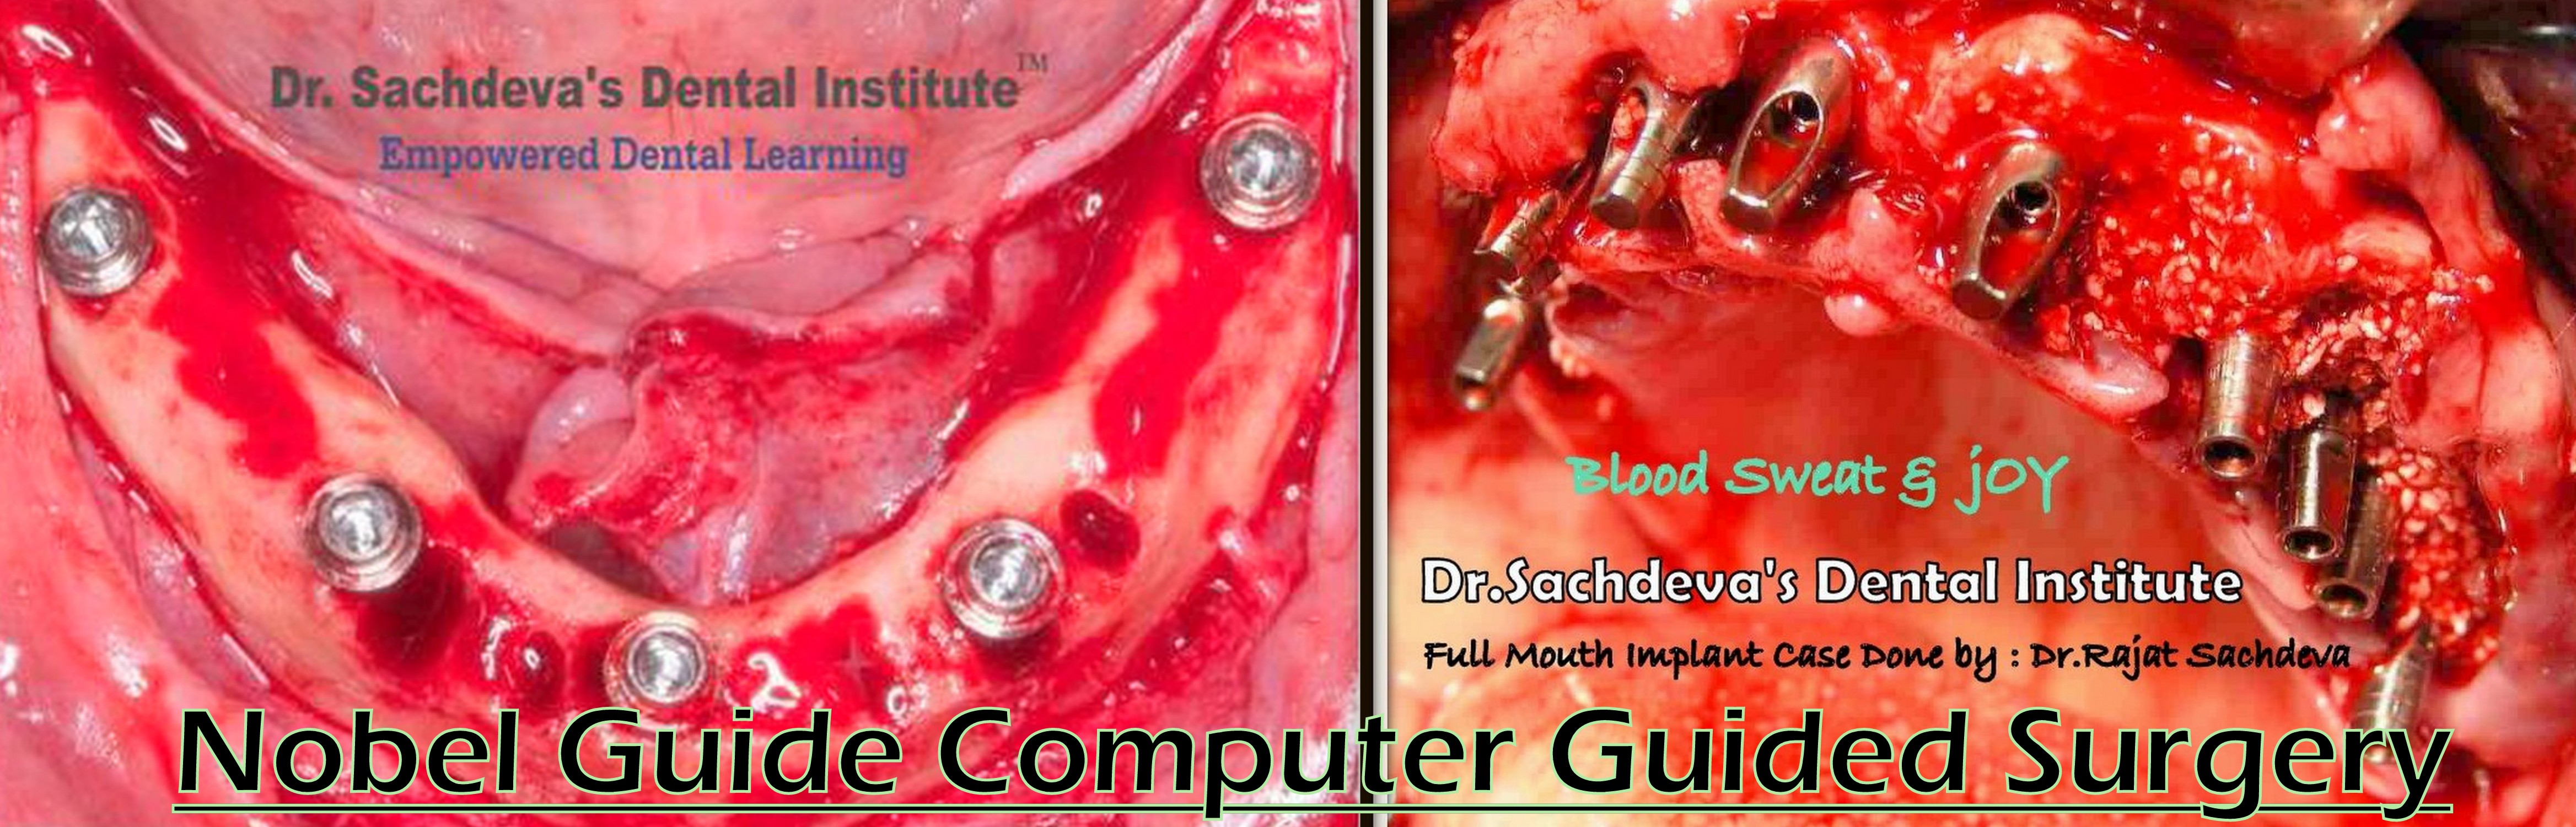 Nobel Guide Computer Guided Surgery